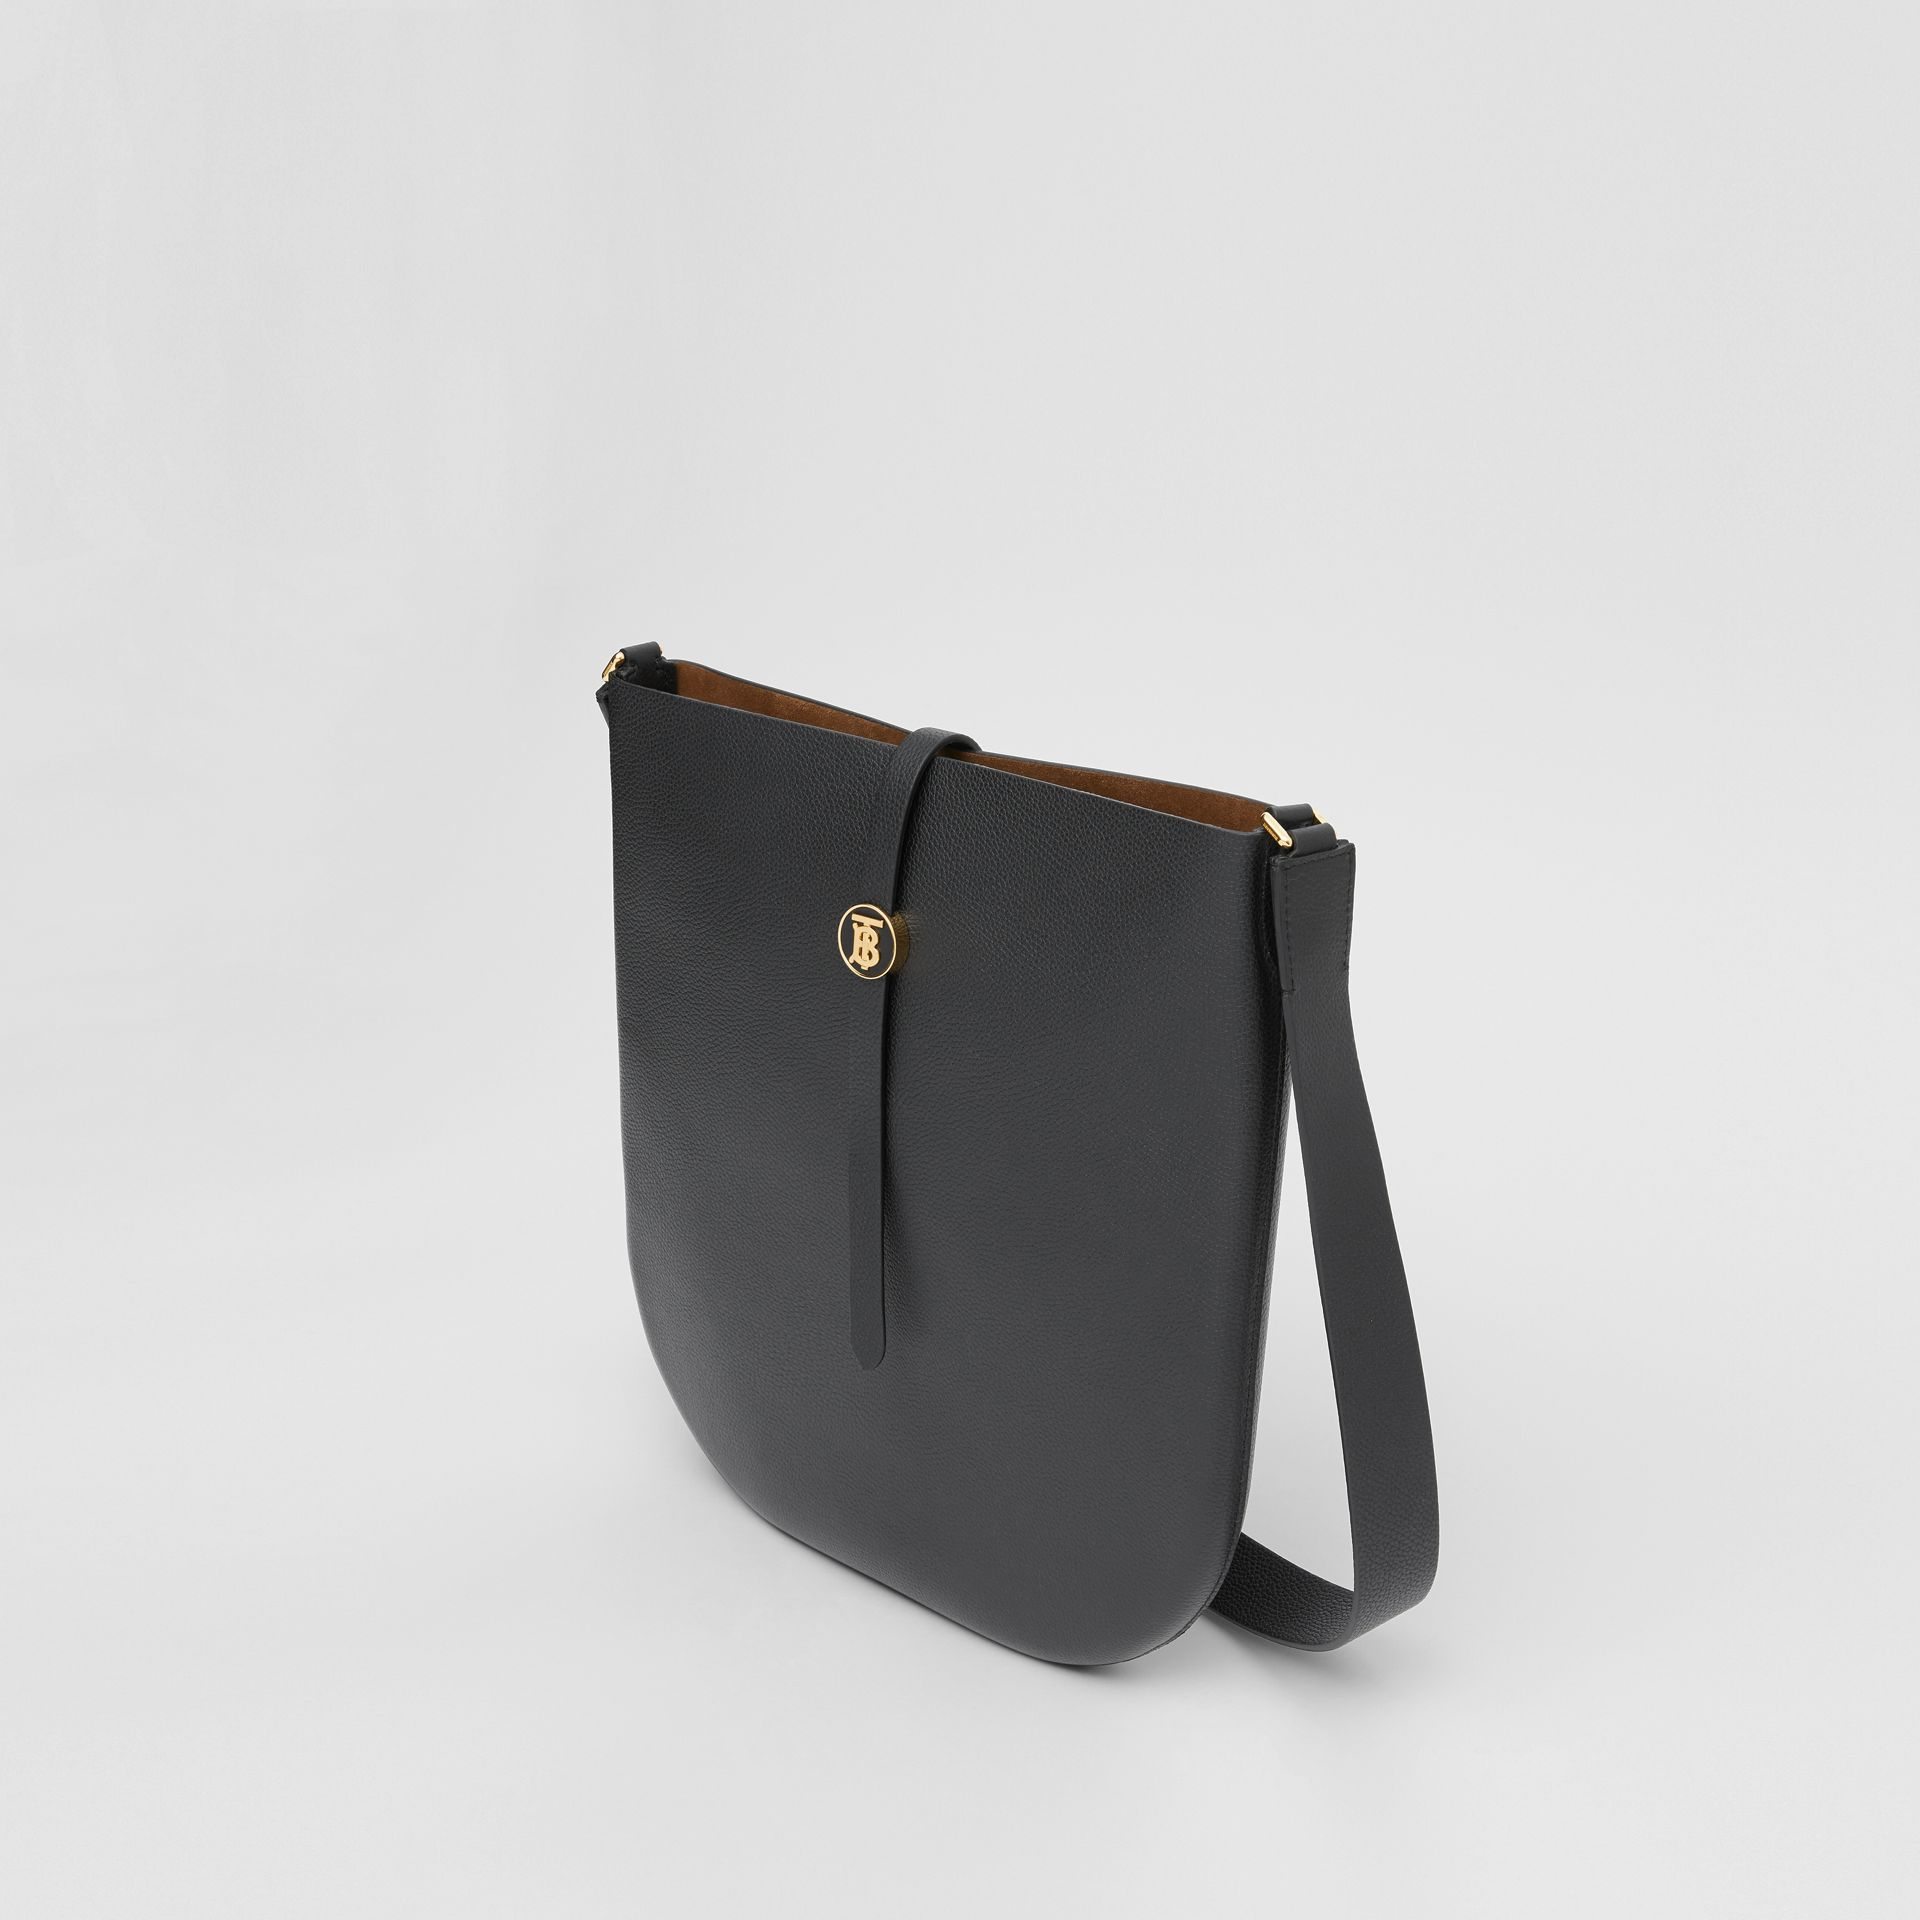 Grainy Leather Anne Bag in Black - Women | Burberry United States - gallery image 3